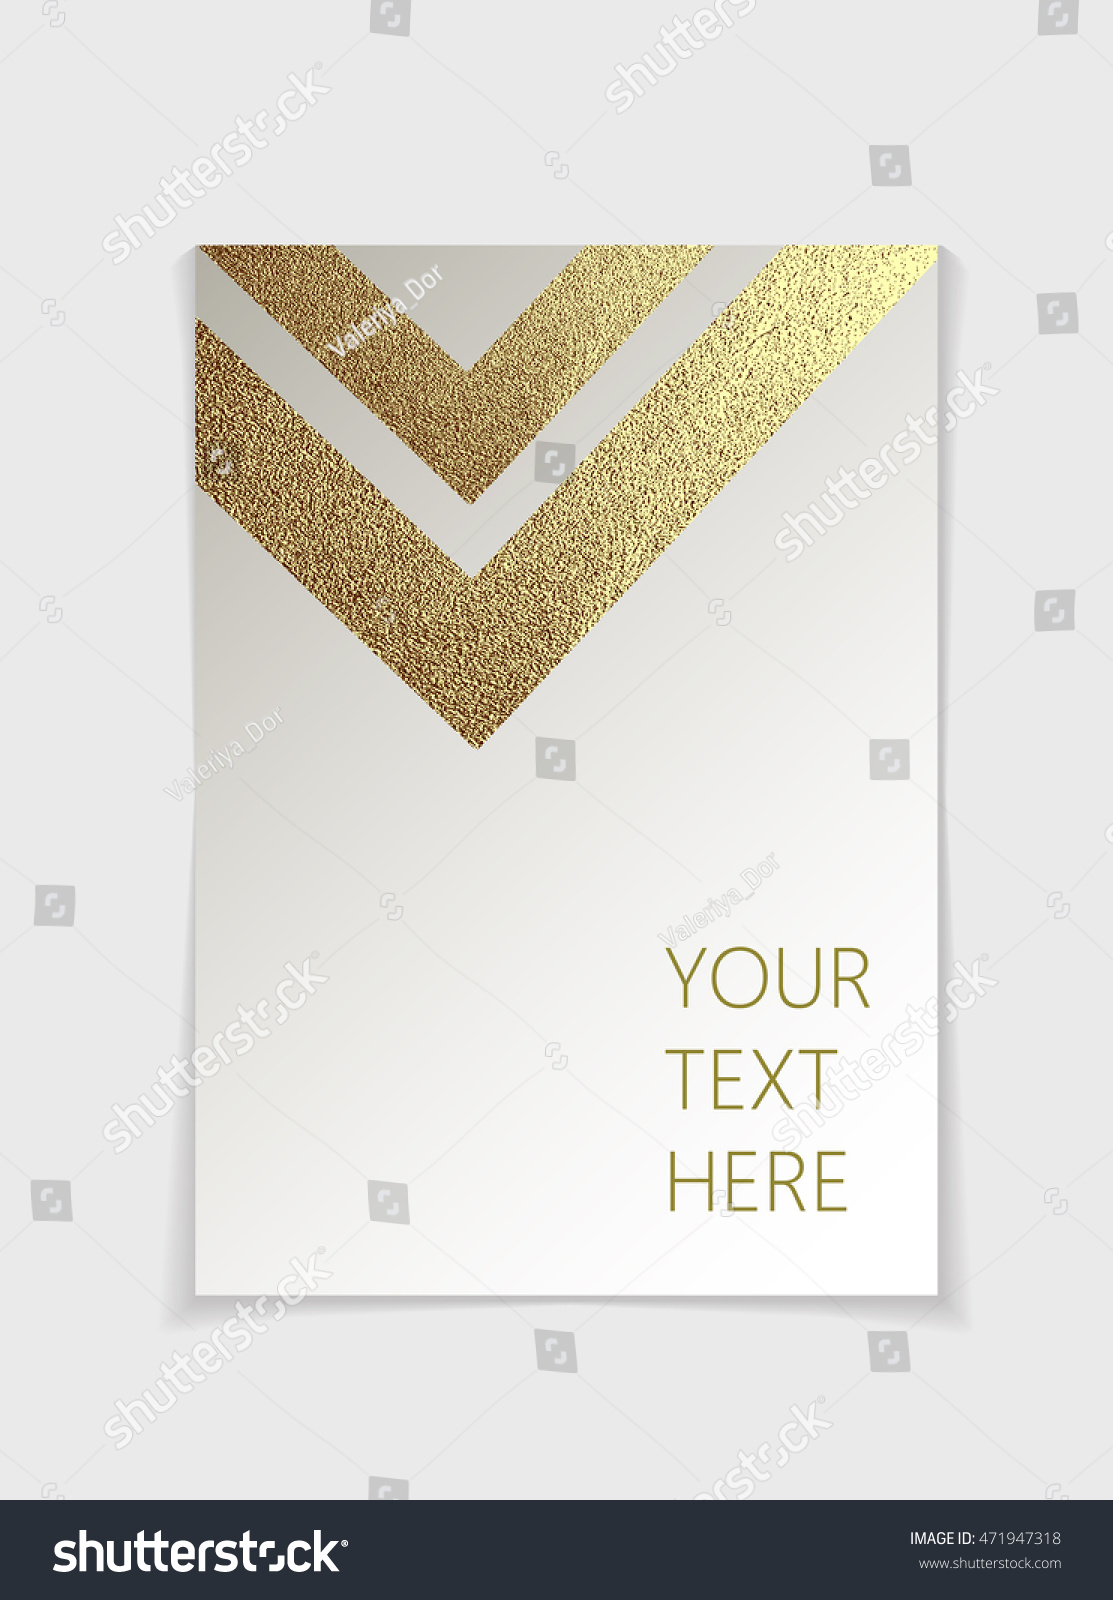 royalty brochure modern gold geometric 471947318 stock brochure modern gold geometric elements cover page design template in a4 size vector